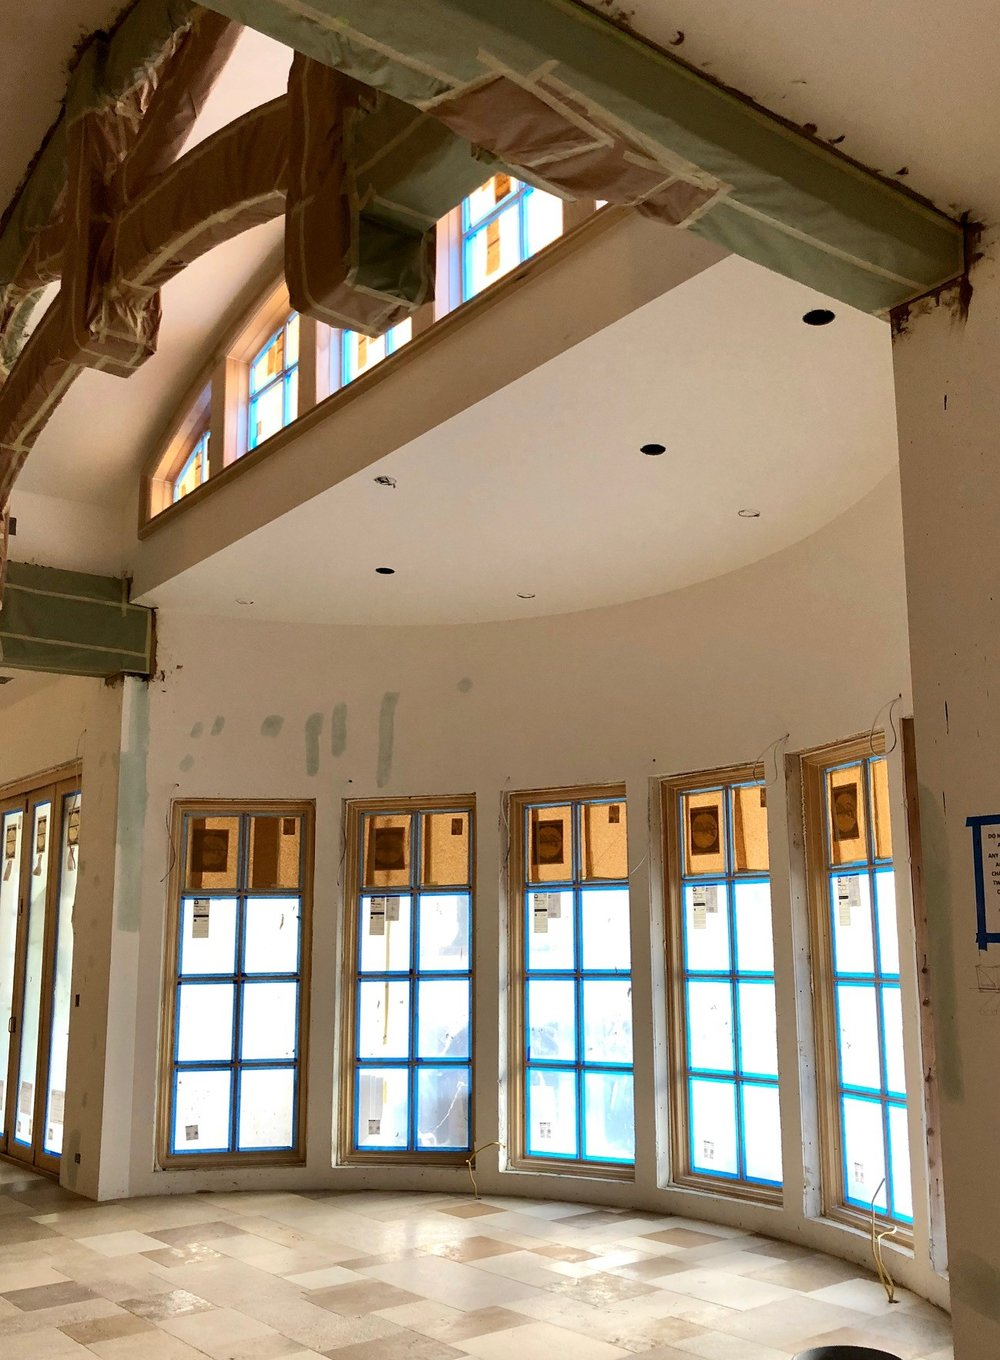 This shot captures both the antique limestone tile in the dining room as well as the beautiful beams and windows that are directly above it. The beams are still wrapped for protection during construction, but it's still a gorgeous set up in our opinion!